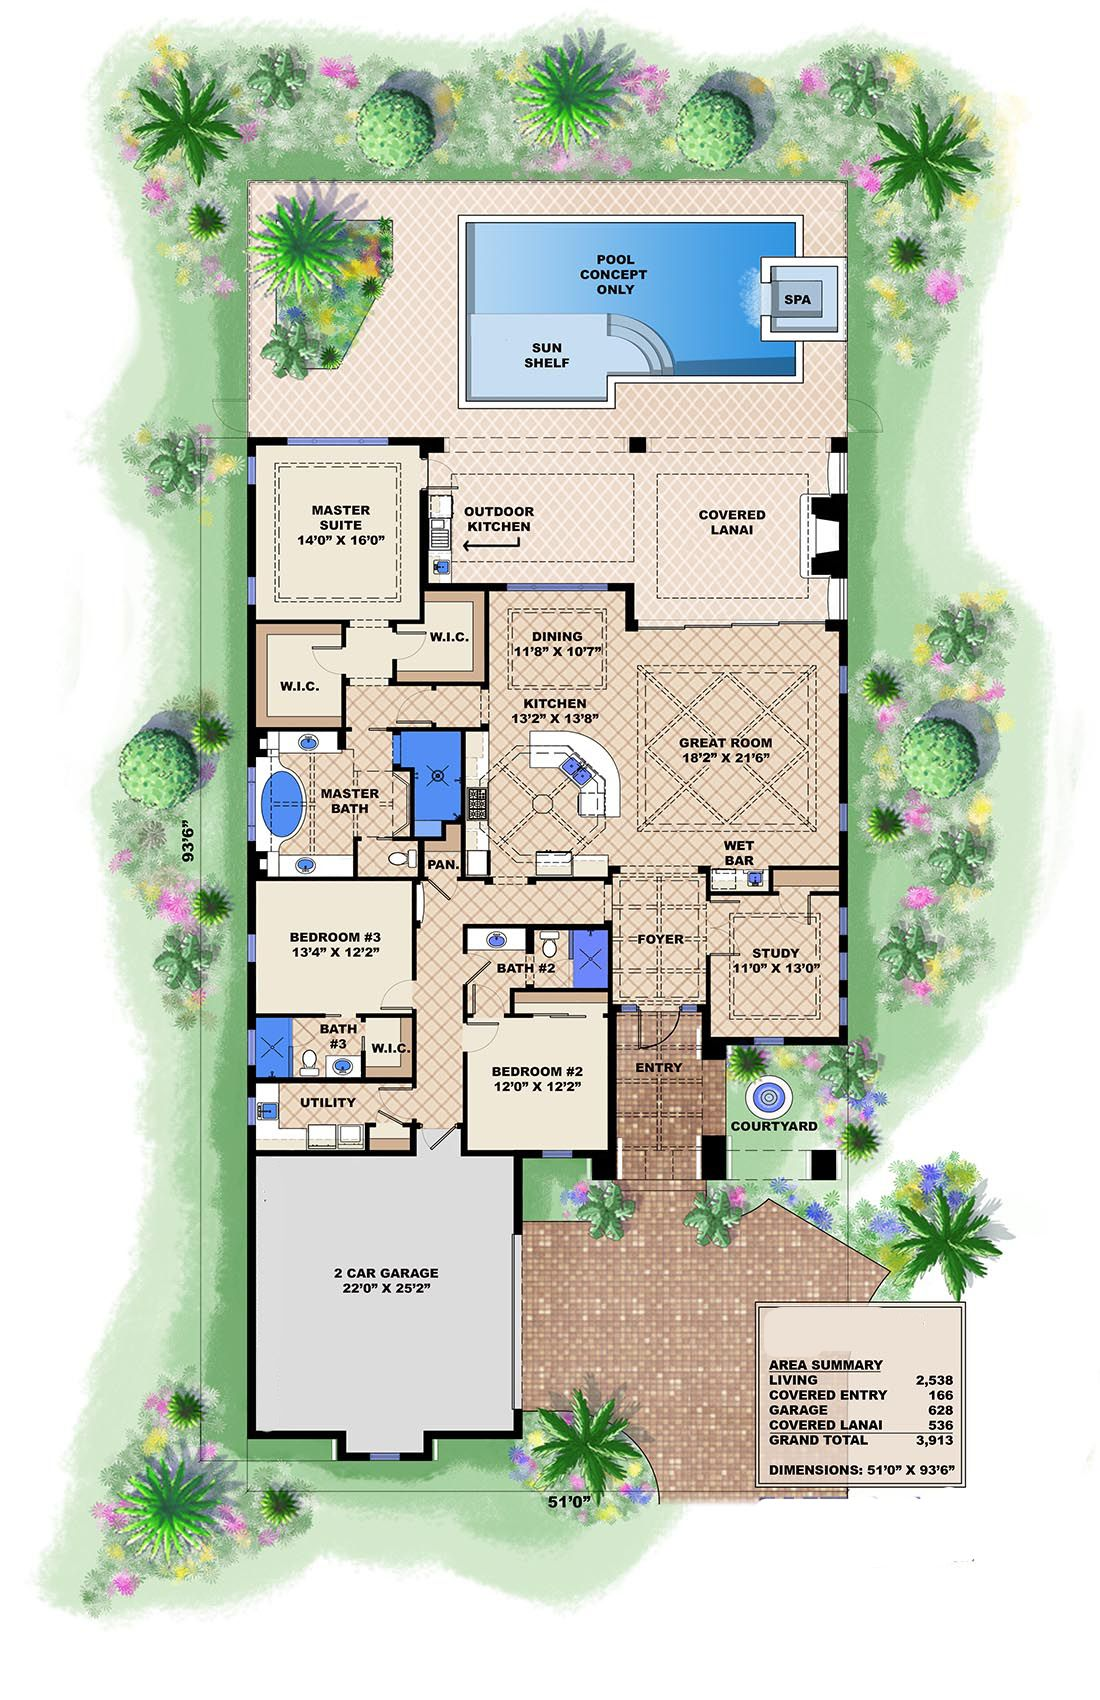 Spanish House Plan 175 1103 3 Bedrm 2583 Sq Ft Home Theplancollection Narrow Lot House Plans Florida House Plans Mediterranean House Plans